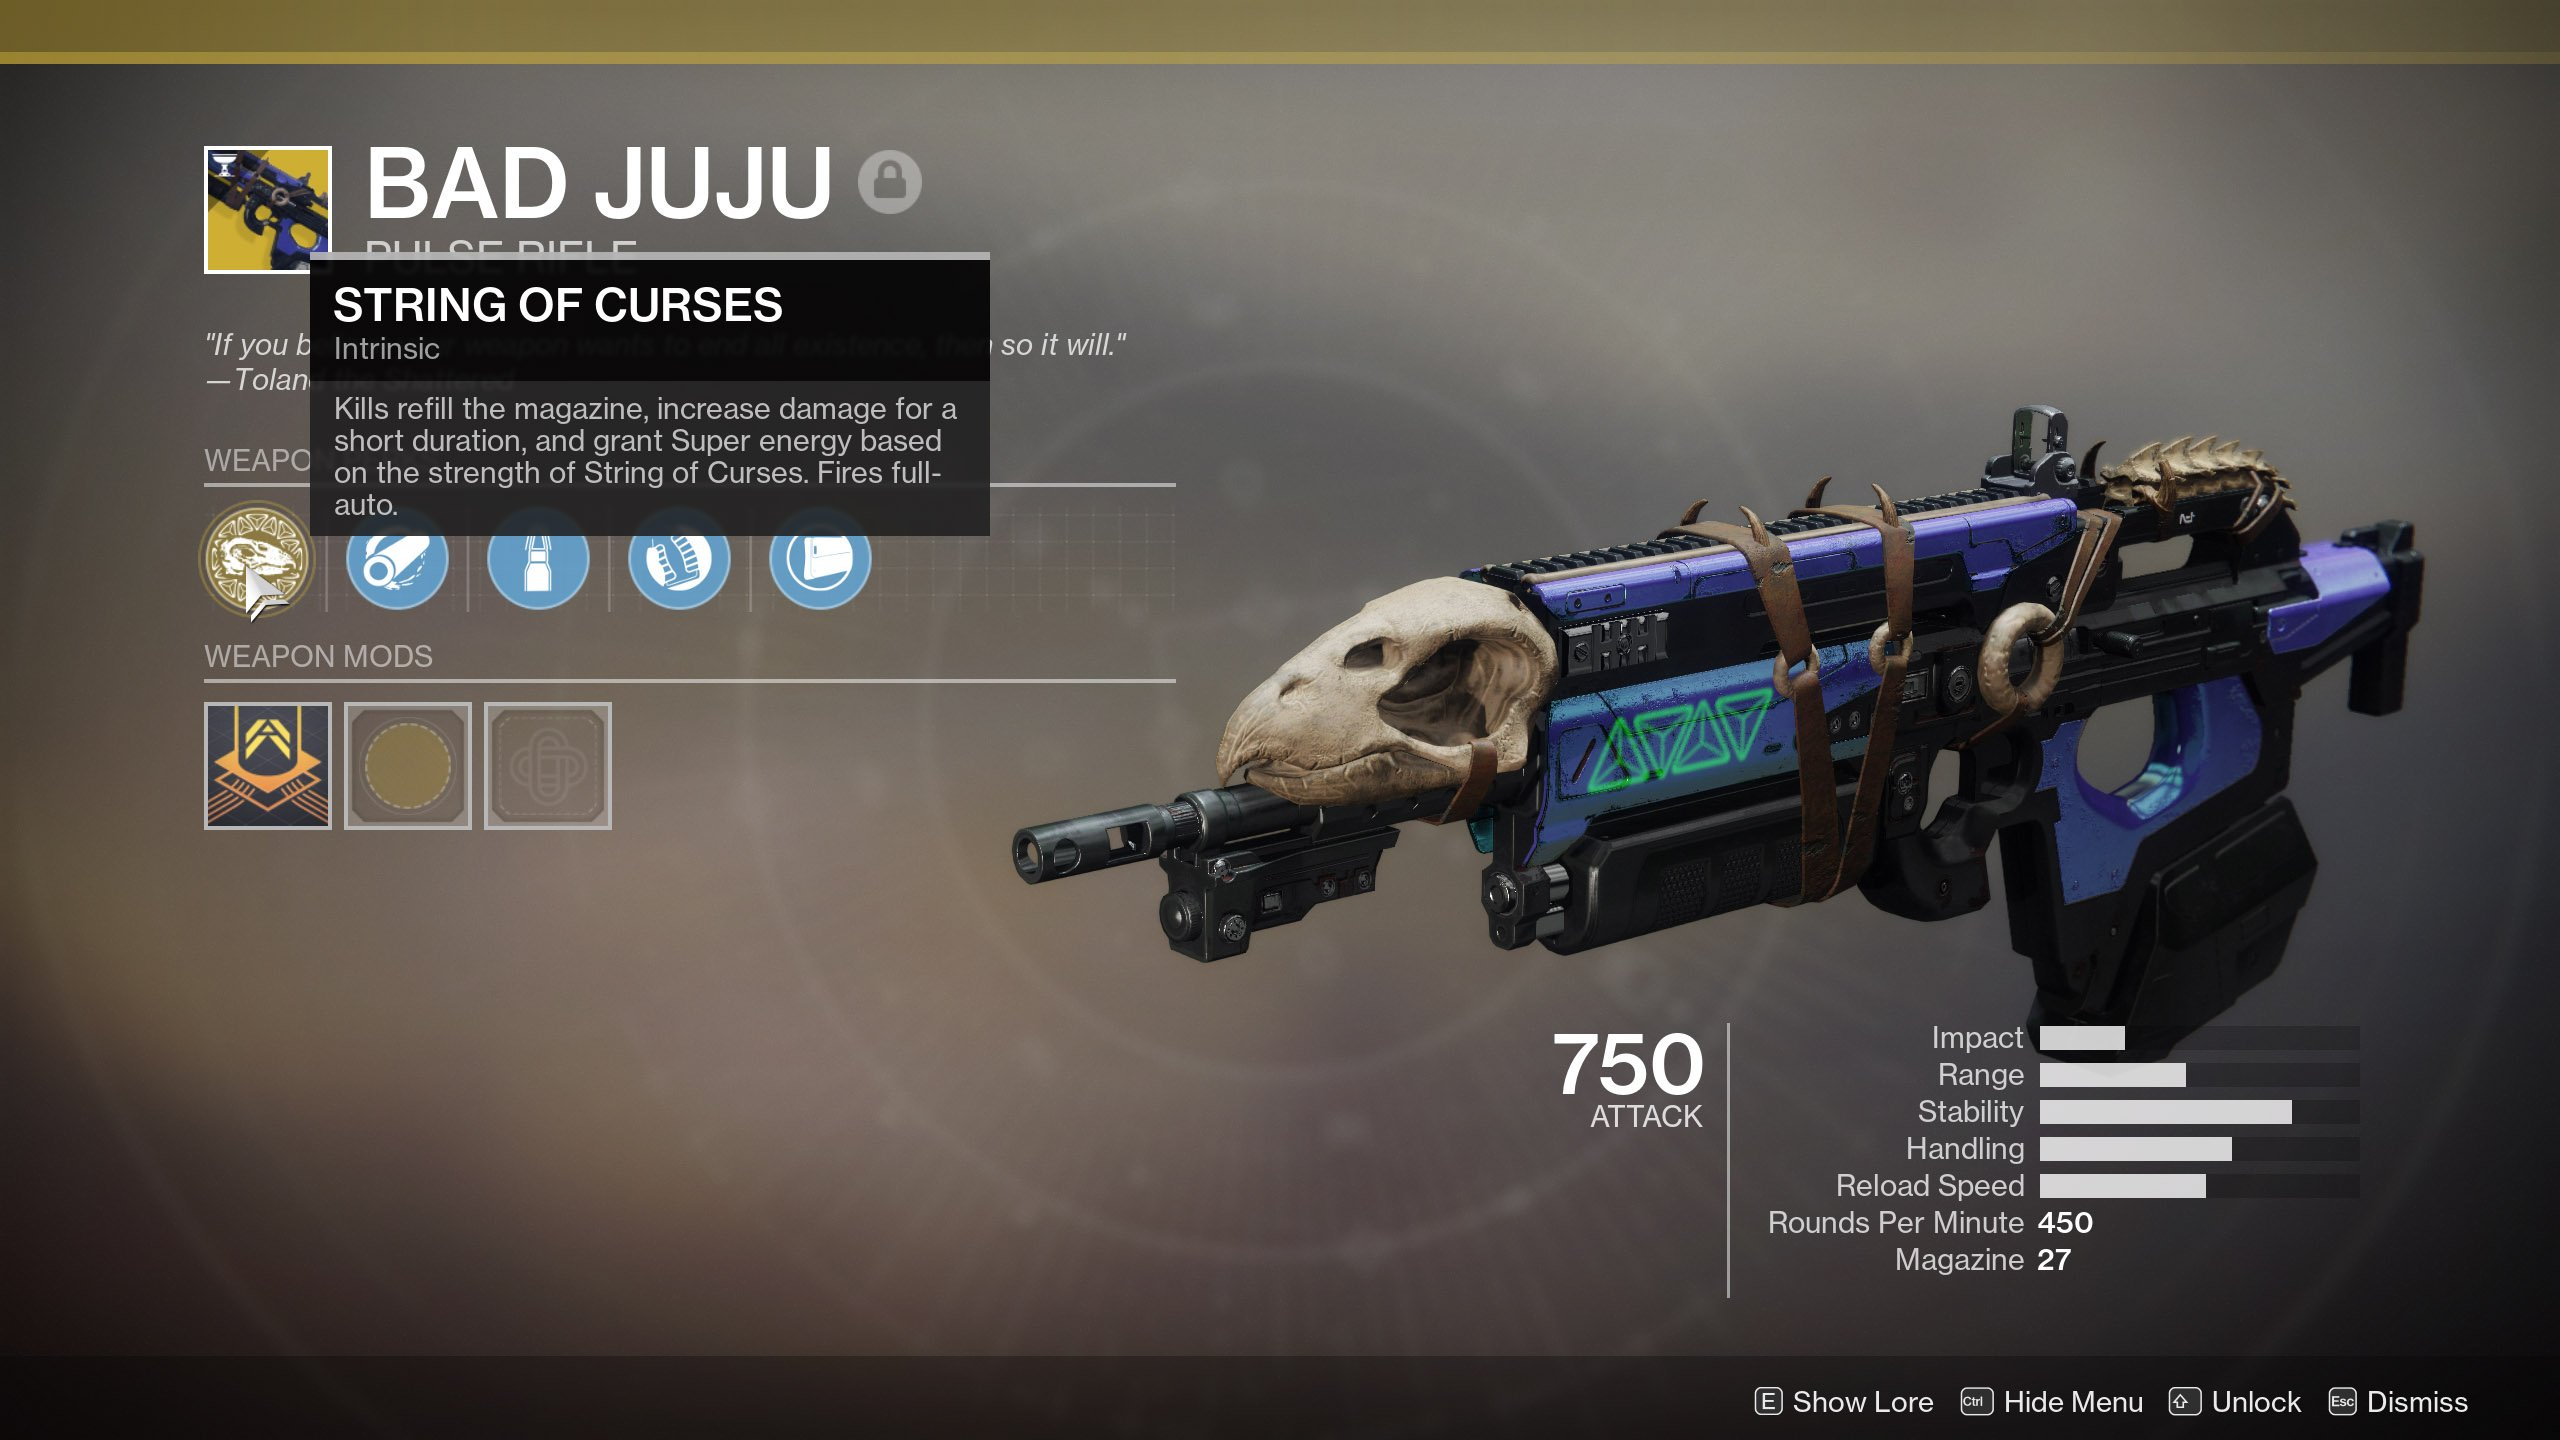 Bad Juju String of Curses Destiny 2